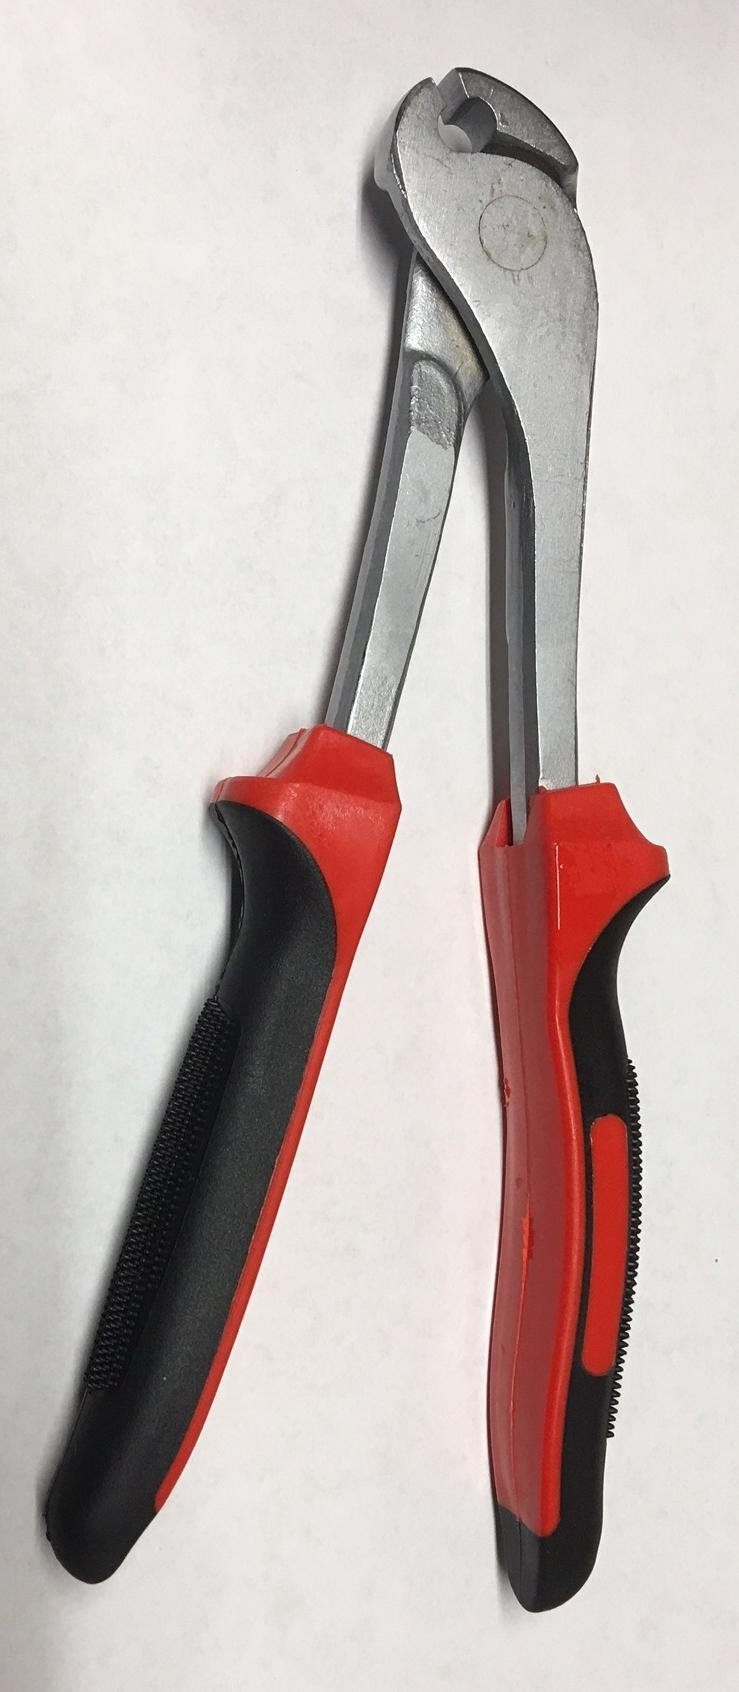 J-clip Pliers Heavy Duty cage building pliers by Rabbitnipples.com by rabbitnipples.com